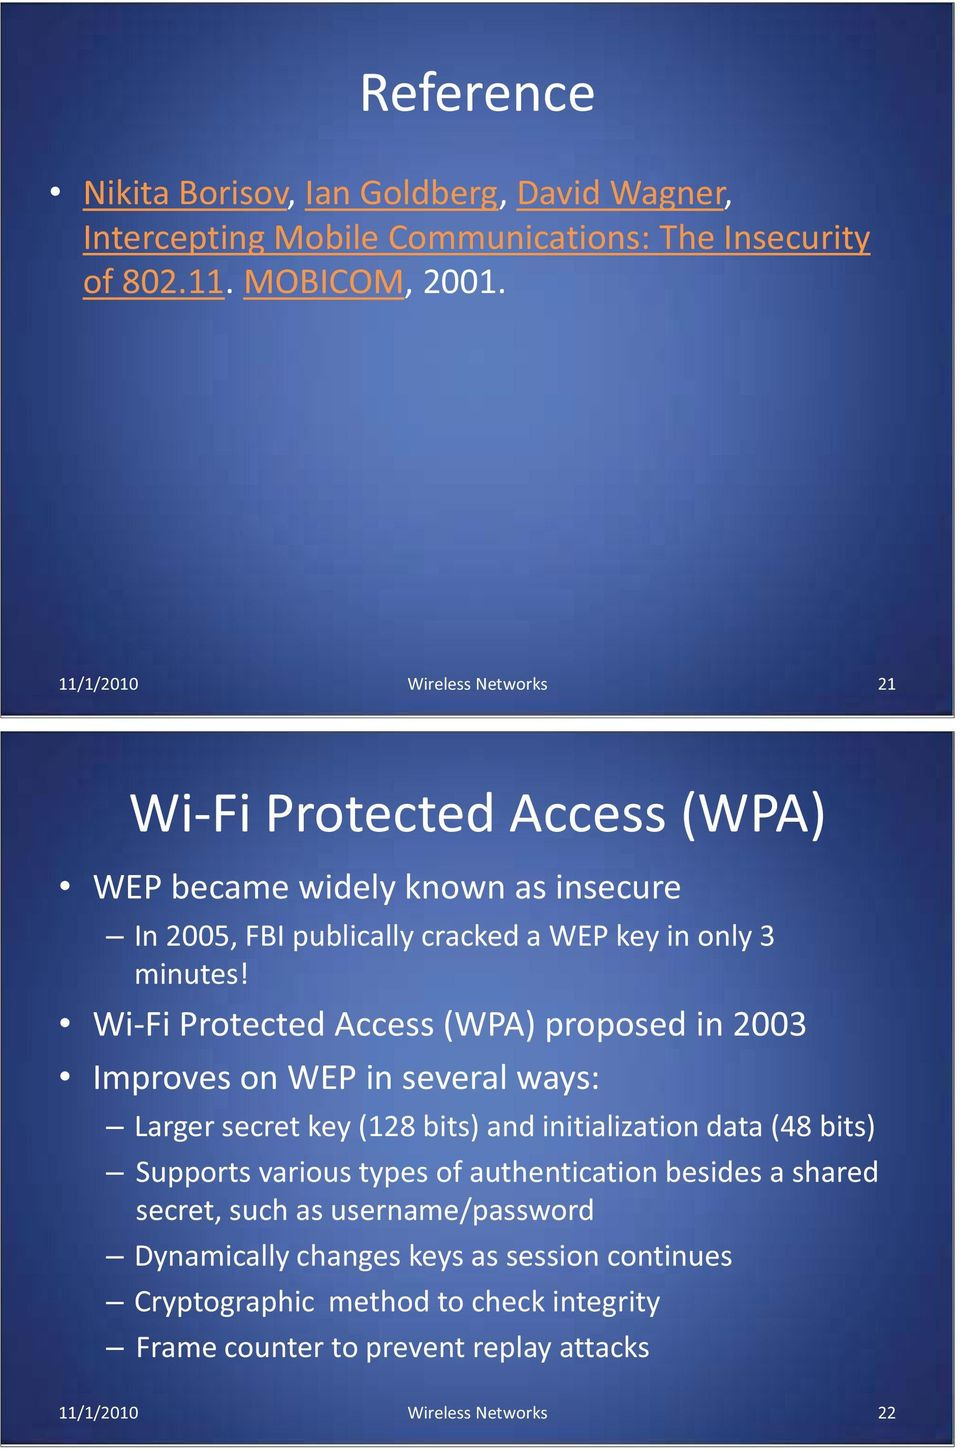 Wi-Fi Protected Access (WPA) proposed in 2003 Improves on WEP in several ways: Larger secret key (128 bits) and initialization data (48 bits) Supports various types of